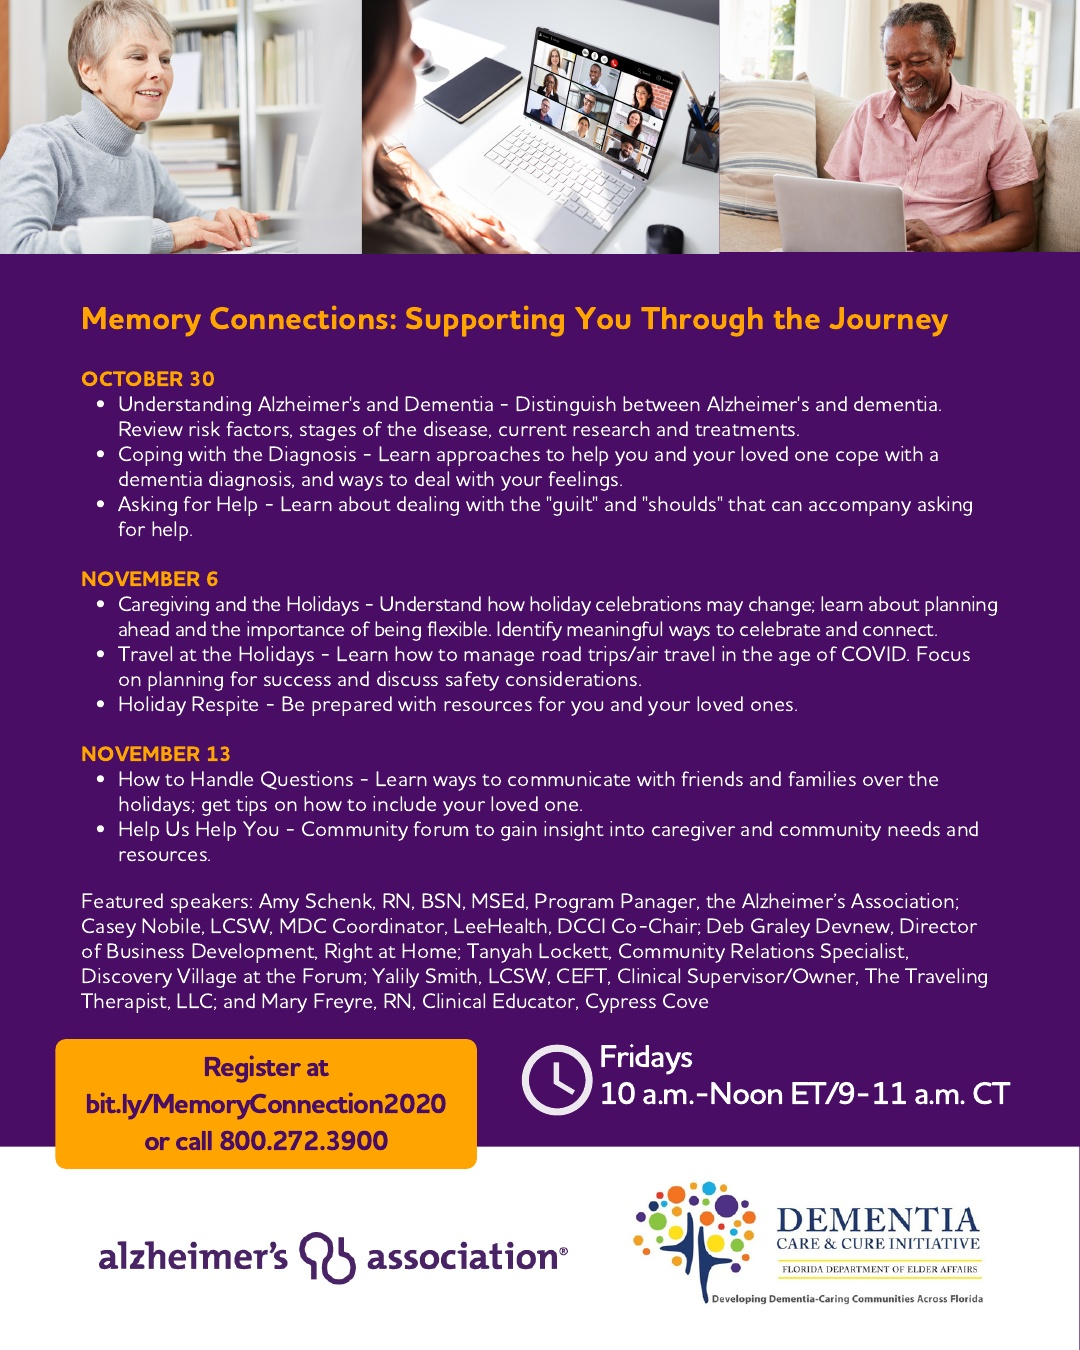 Memory Connections: Supporting You Through the Journey (webinar)